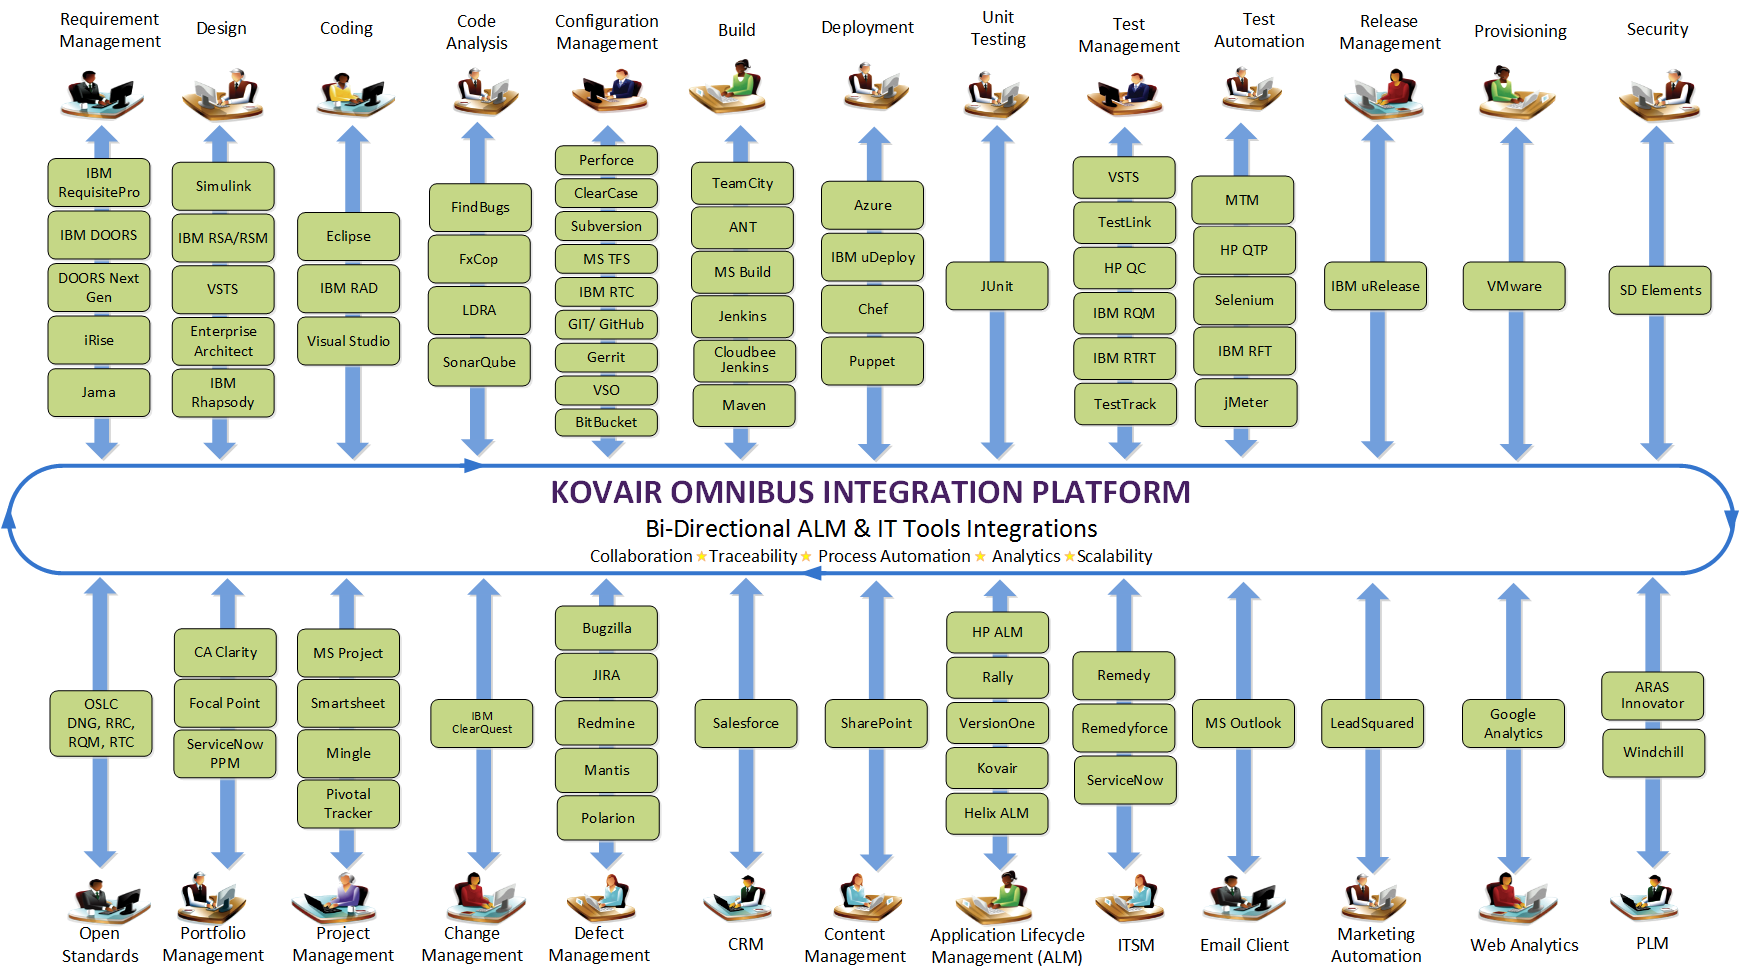 70 Integrations from Kovair